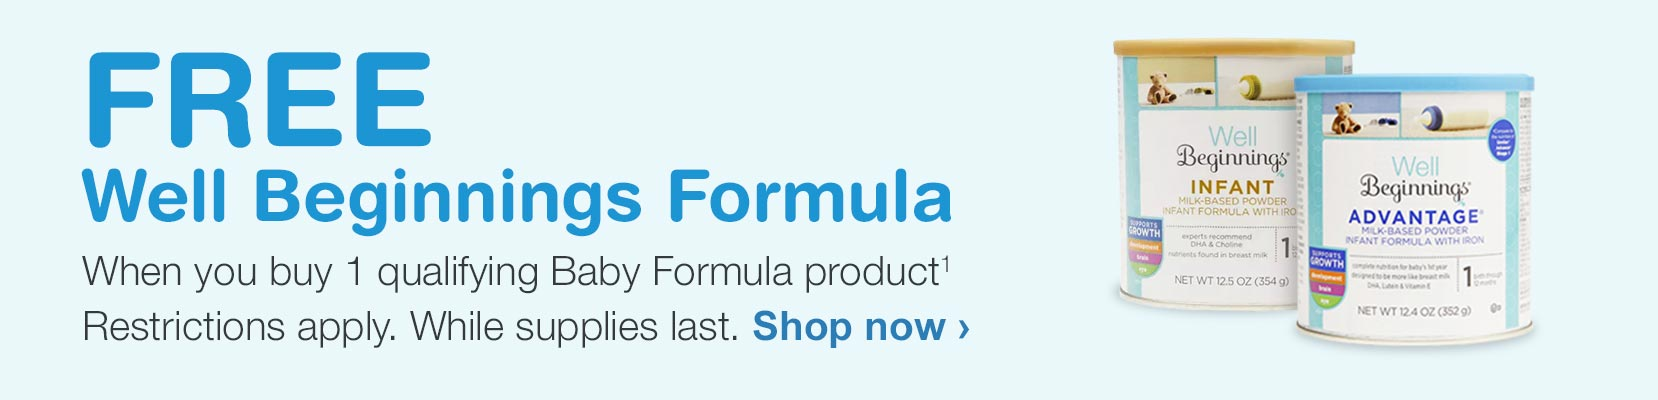 FREE Well Beginnings Formula when you buy 1 qualifying Baby Formula product.(1) Restrictions apply. While supplies last. Shop now.